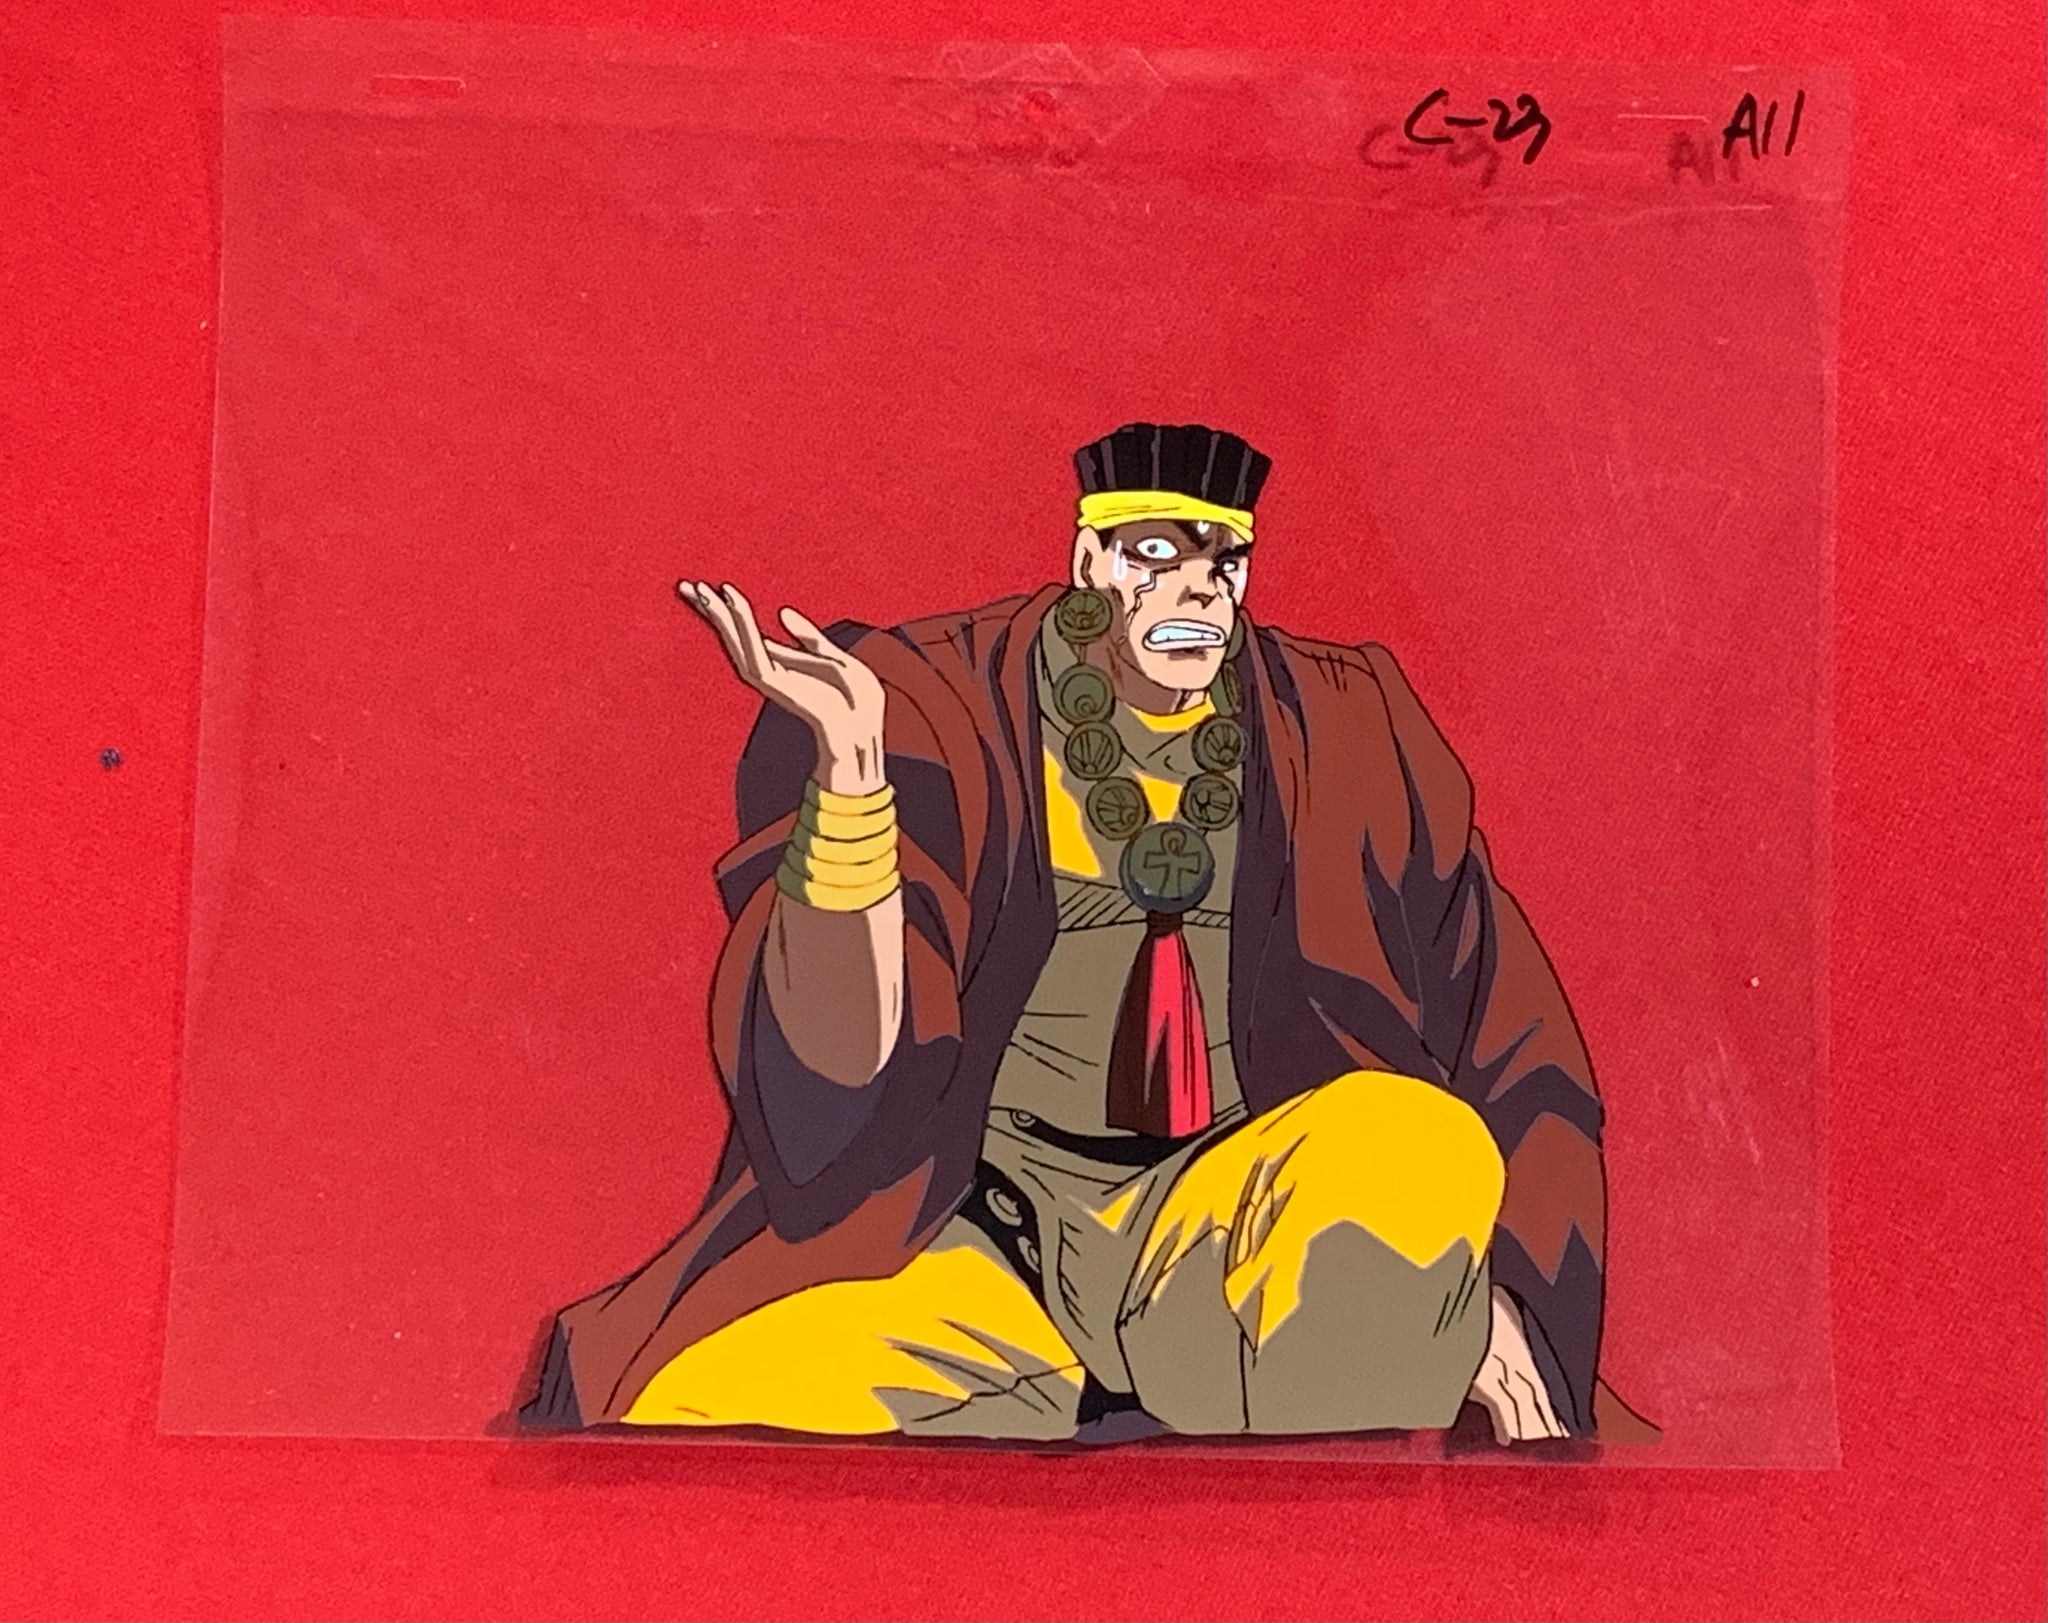 JoJo Bizarre Adventure Muhammad Avdol (EX0626) - Animation Legends